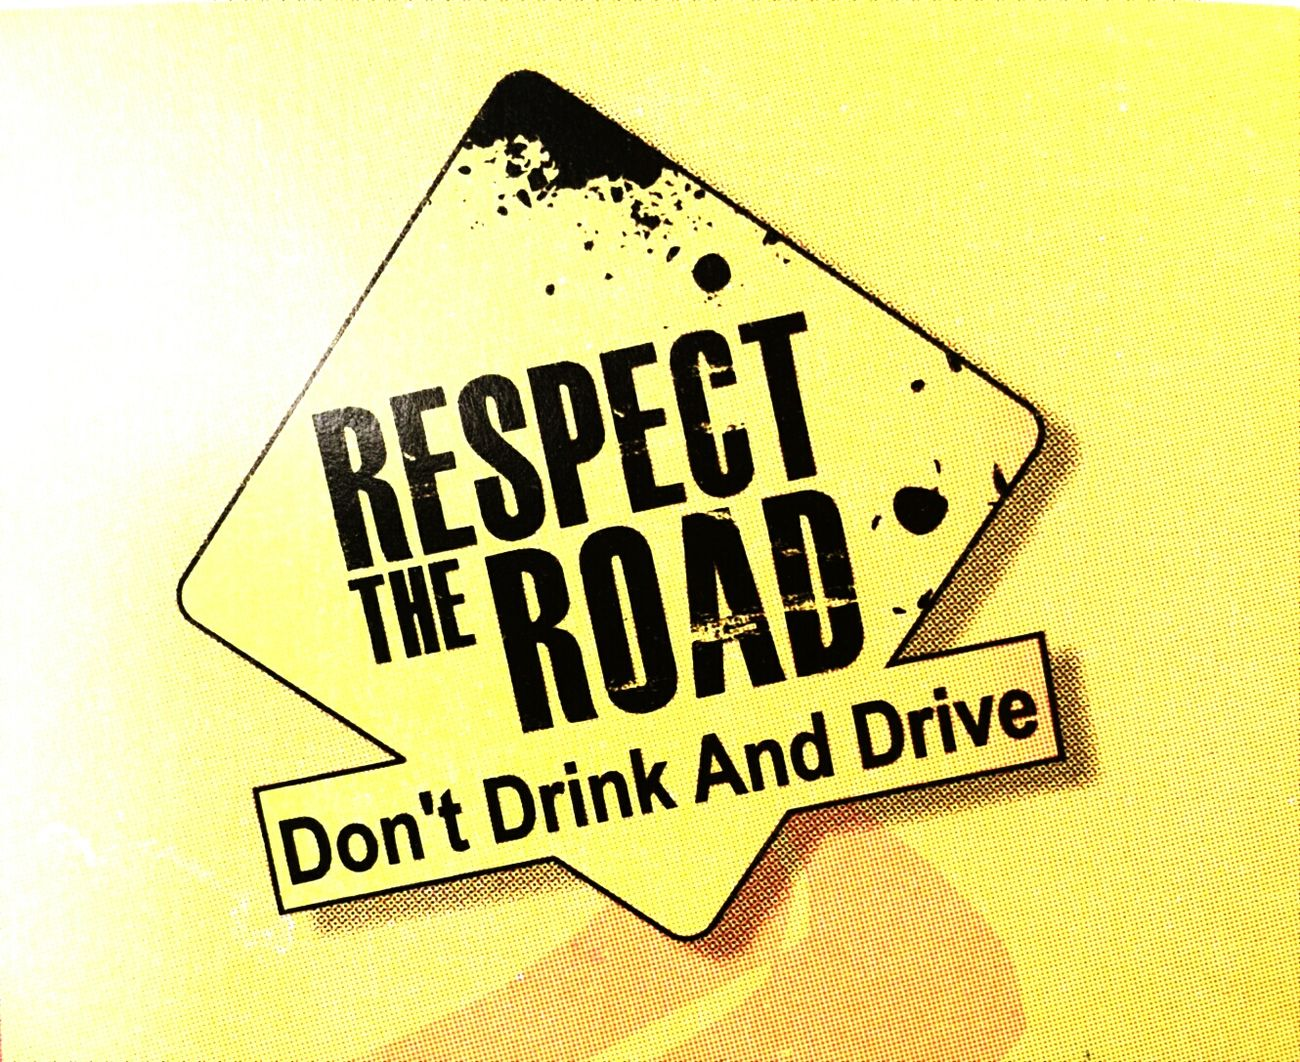 Dontdrinkanddrive Besafe Roadsafety LifeisPrecious